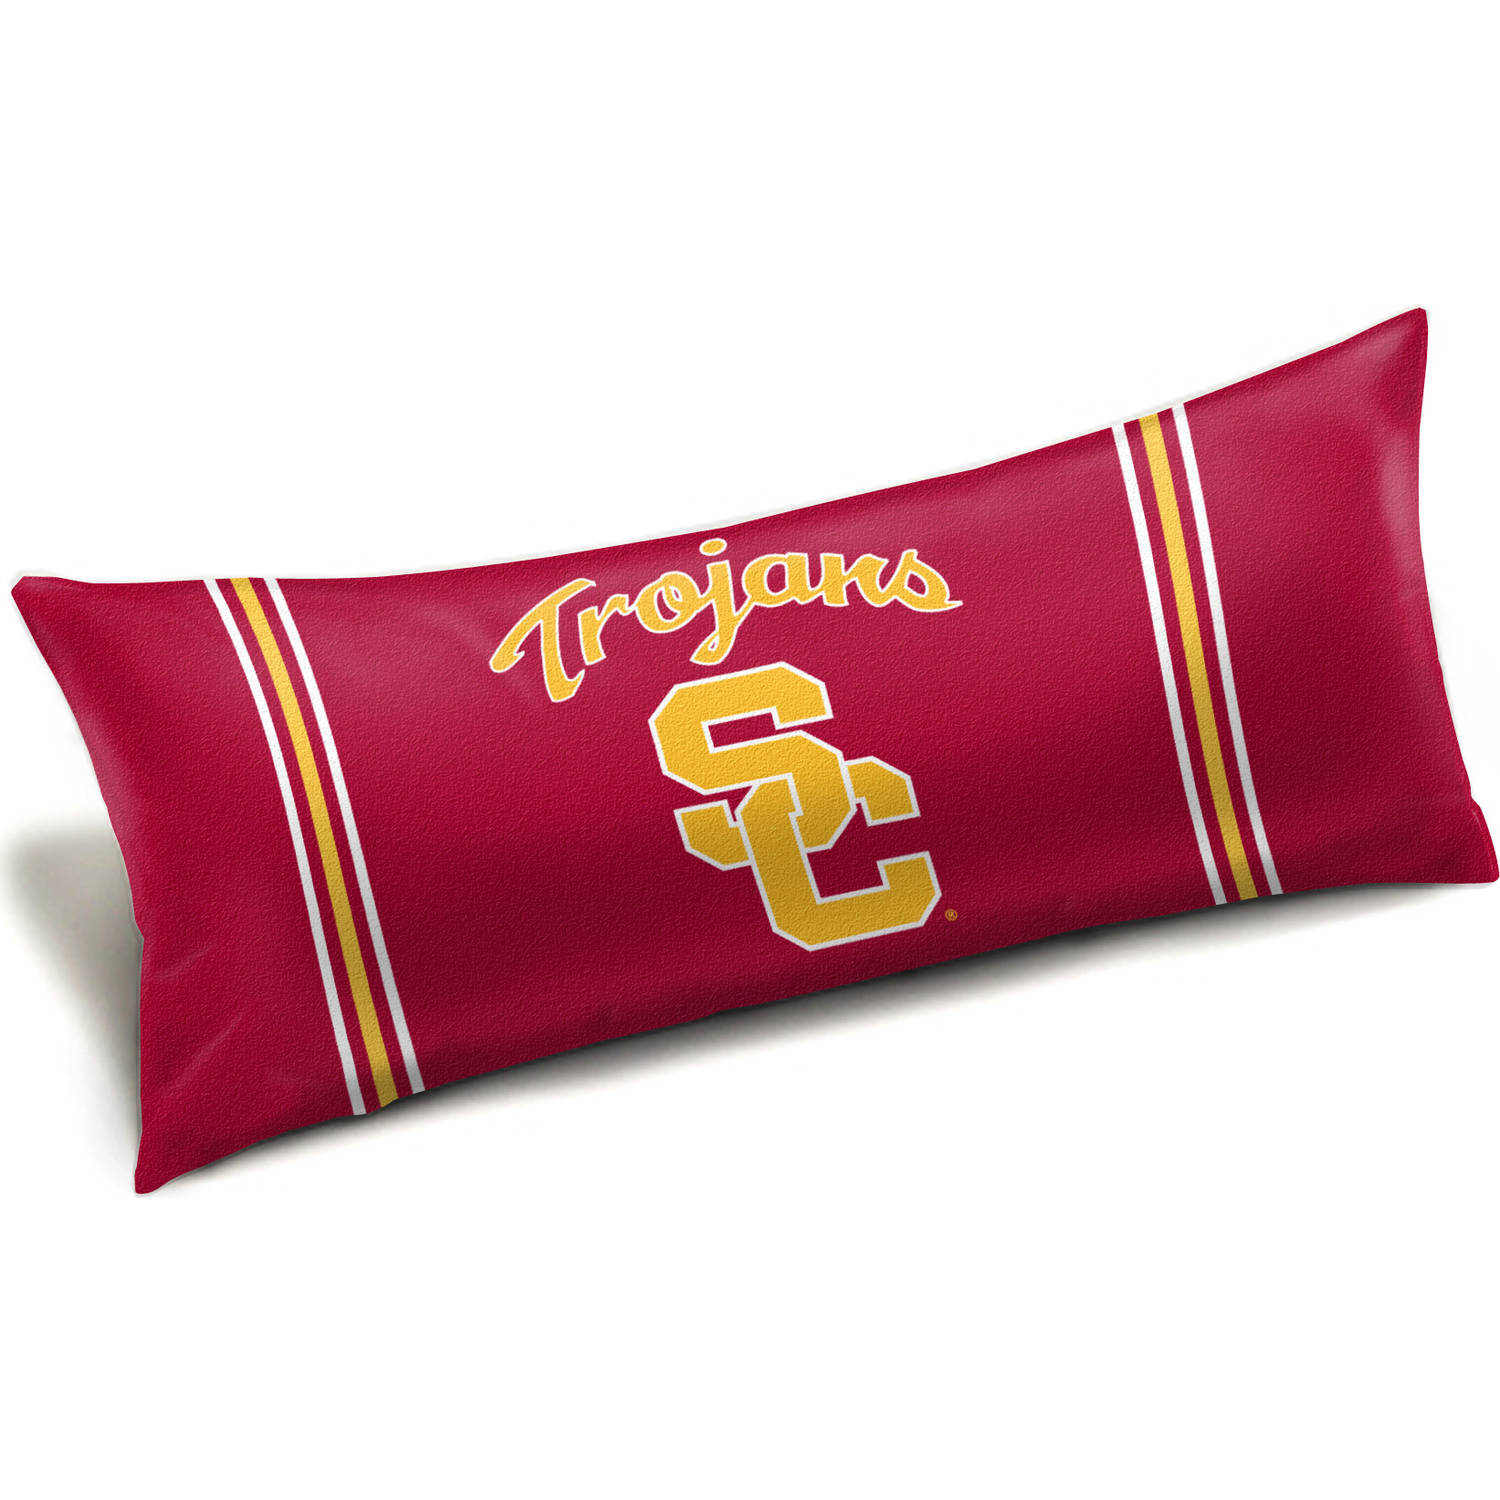 NCAA USC Trojans Body Pillow, 1 Each